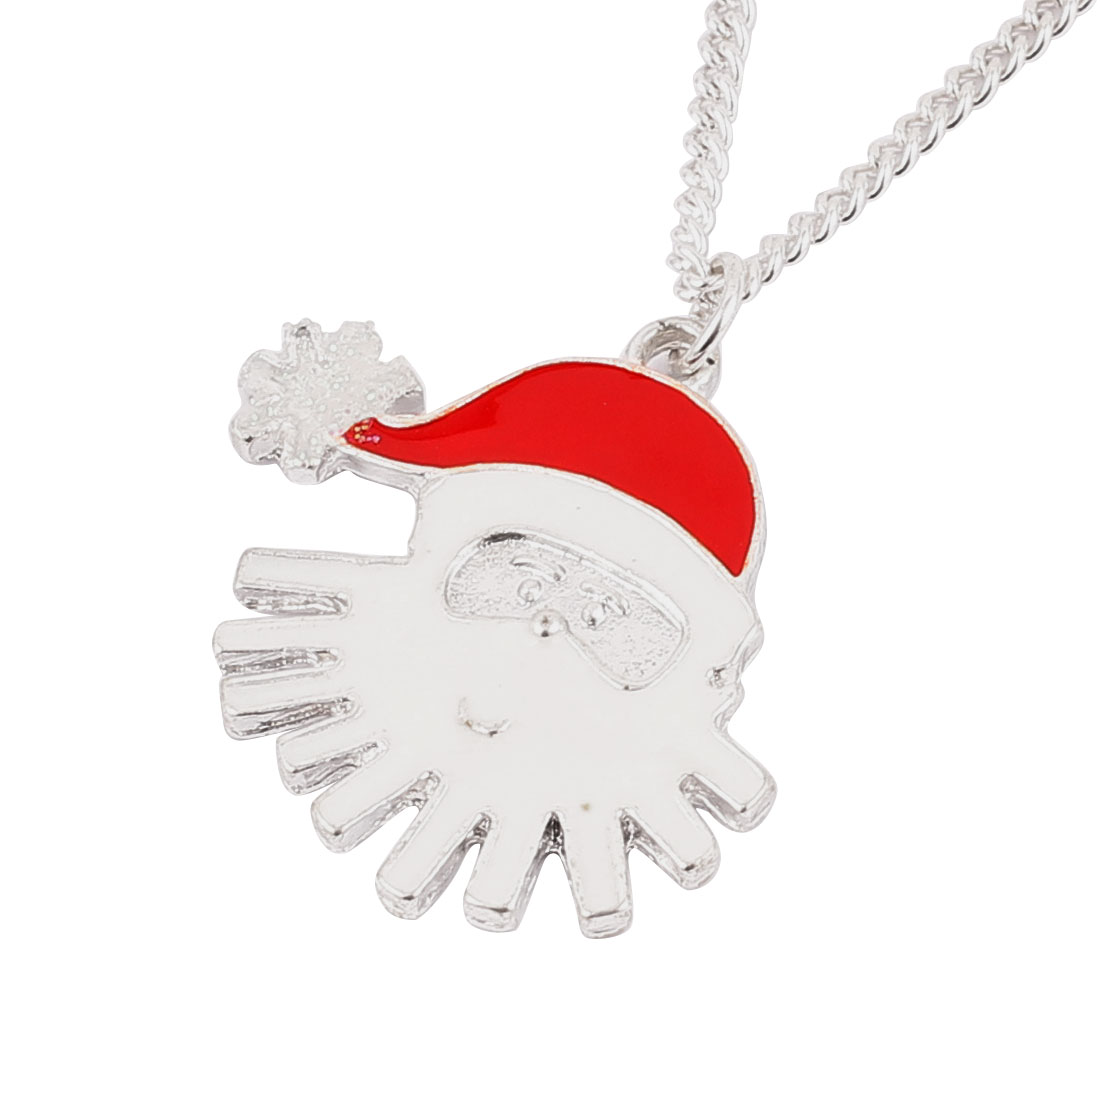 Silver Tone Red Metal Father Christmas Detail Pendant Lobster Buckle Strip Link Slim Chain Necklace Neckwear Collar for Ladies Women